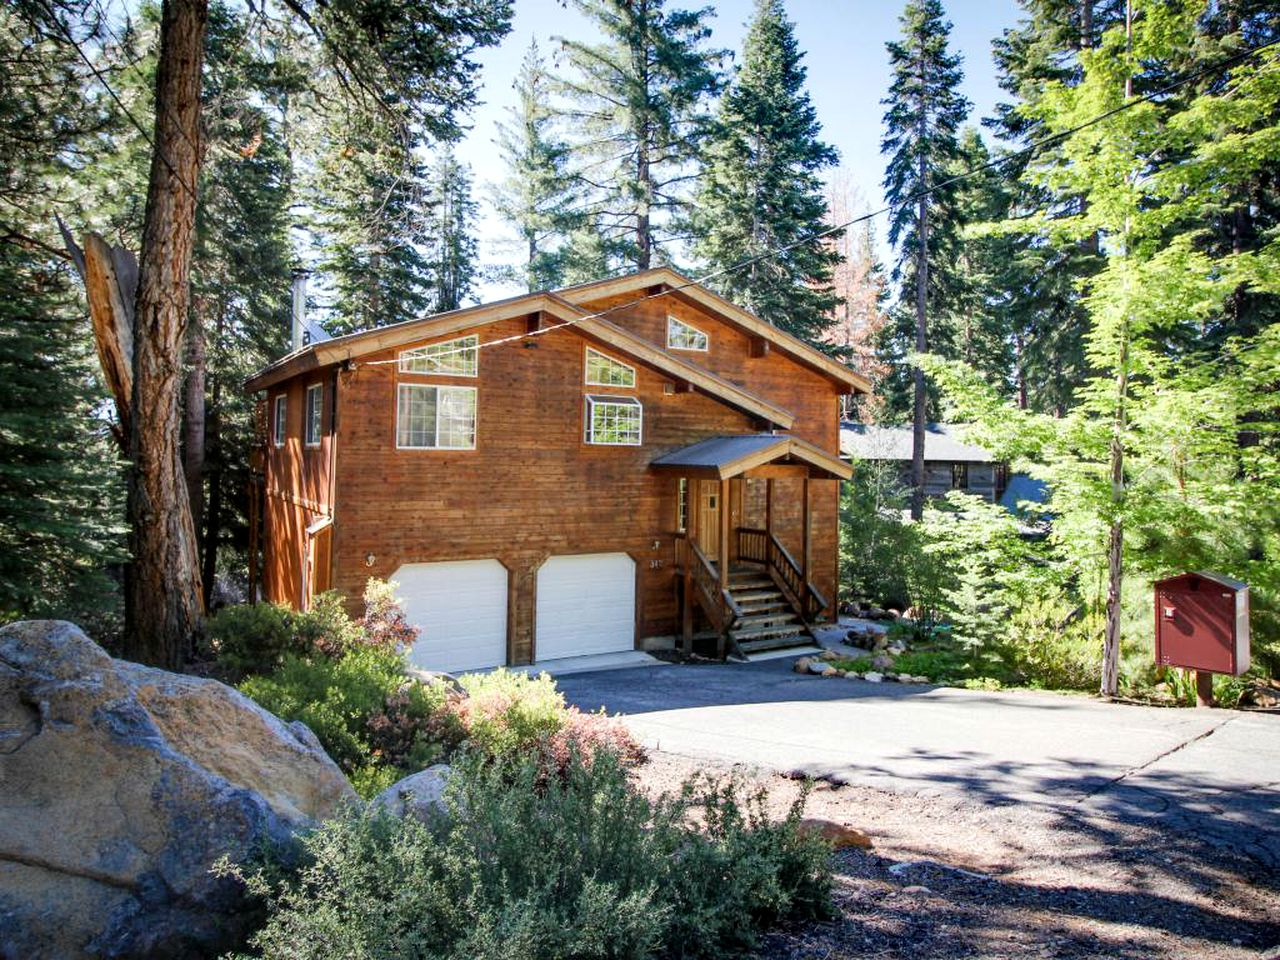 Cabin rental with two car garage surrounded by trees in Tahoe Vista, California.